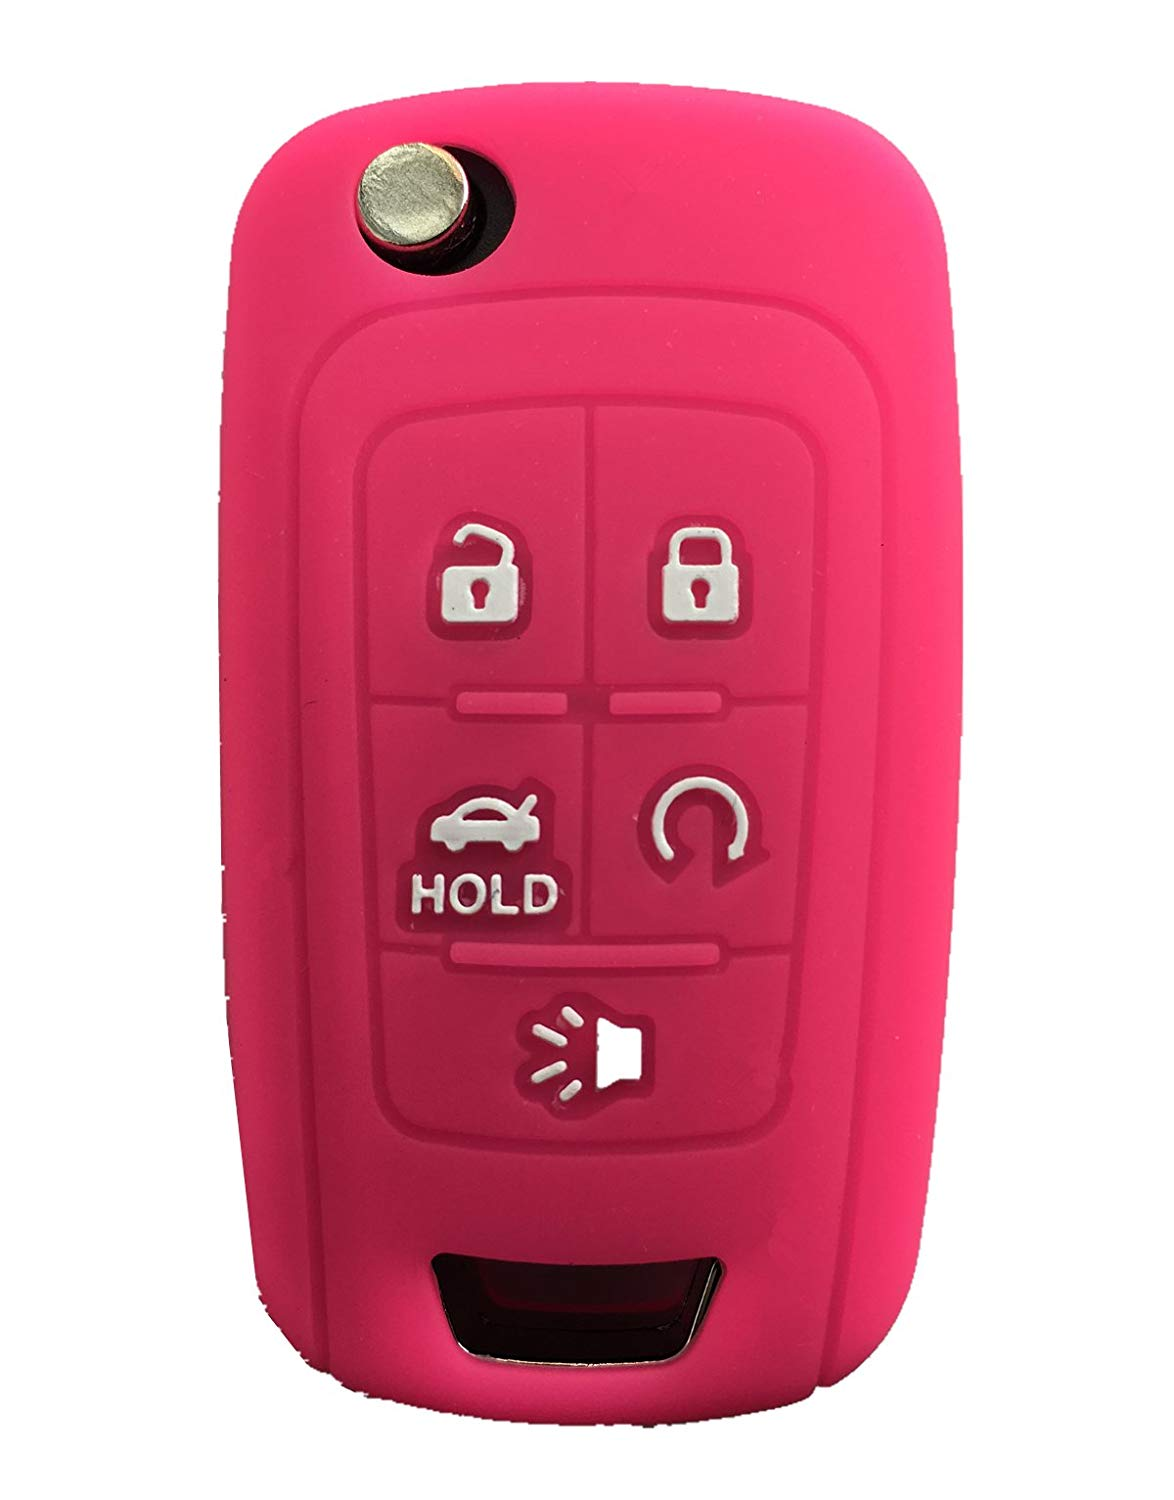 KAWIHEN Silicone Keyless Entry Case Cover Smart Remote Key Fob Cover Protector For Chevrolet Camaro Cruze Equinox Impala Malibu Sonic OHT01060512 KR55WK50073(Pink)